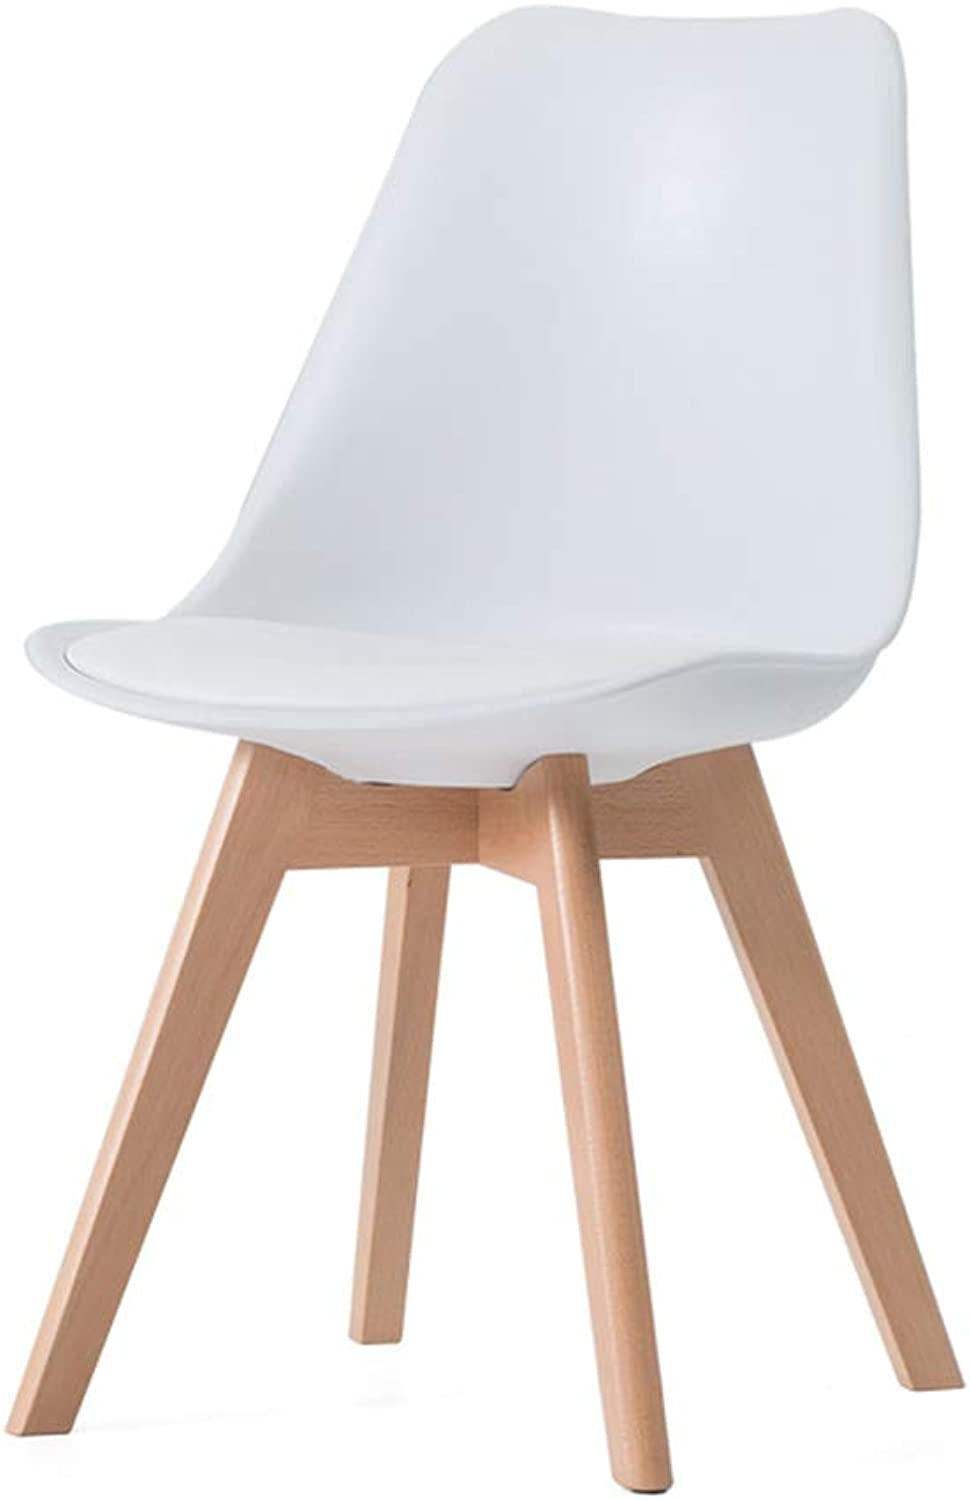 Chair Chair, Solid Wood Chair Legs One-Piece Seat Plate Fit The Human Body Curve Household Rest Area Bedroom Lounge Chair 6 colors (color   White)